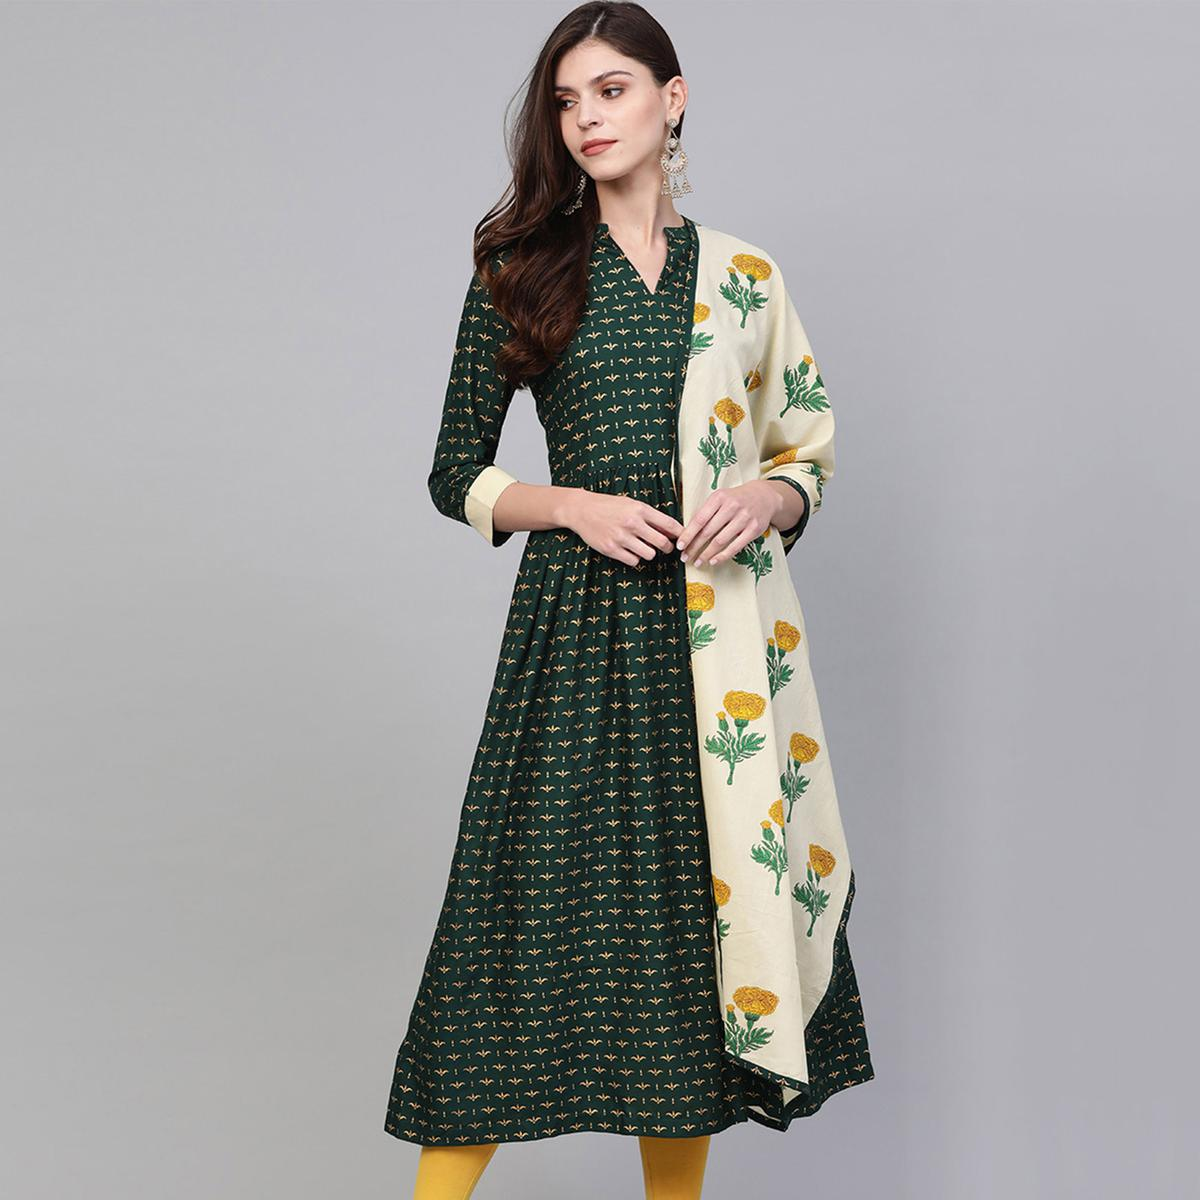 Blooming Bottle Green Colored Party Wear Printed Rayon Kurti With Dupatta